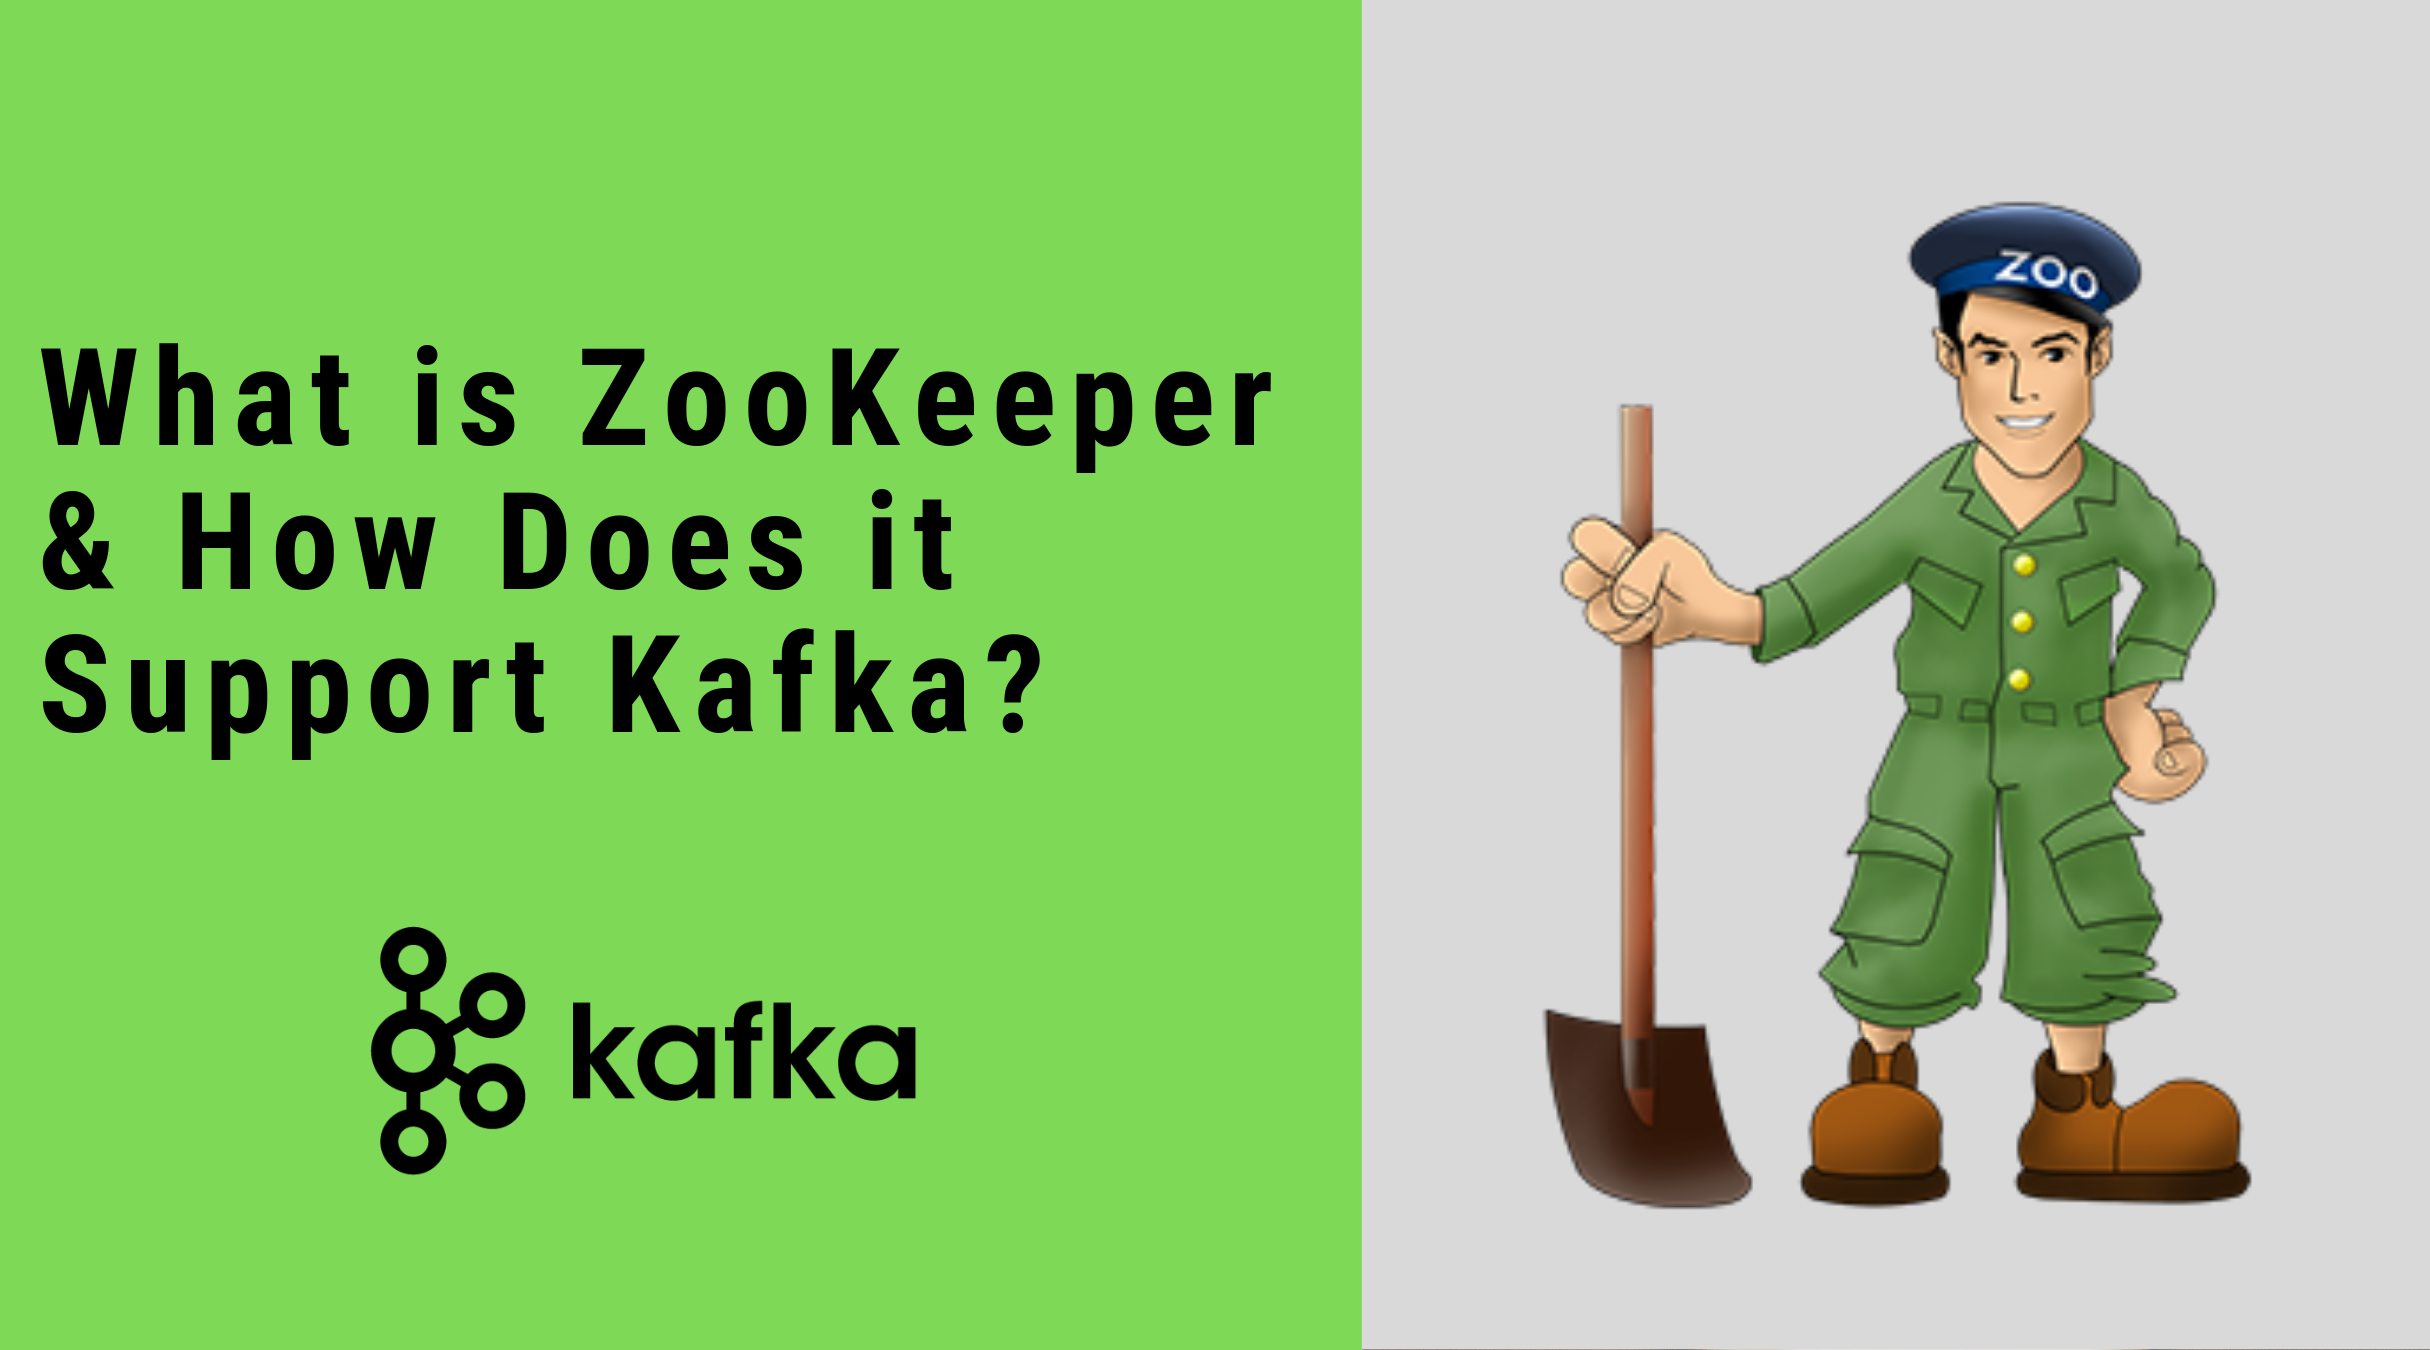 What is ZooKeeper & How Does it Support Kafka?